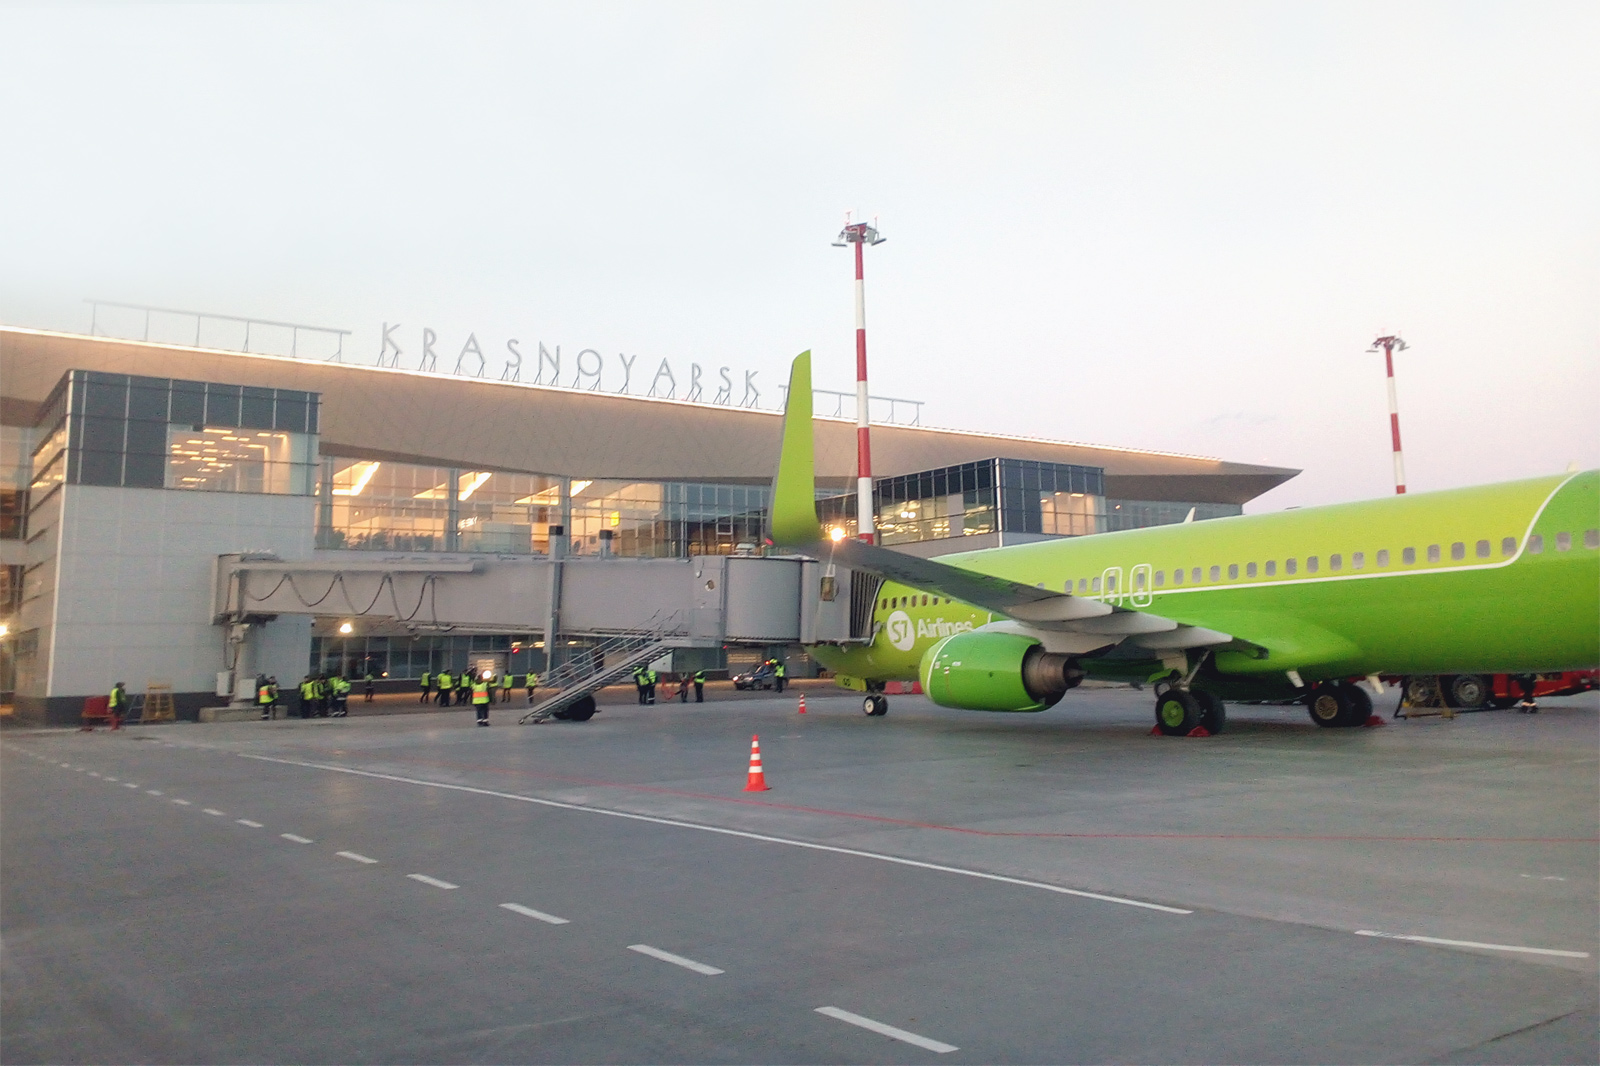 The new terminal of the international airport of Krasnoyarsk with boarding bridges